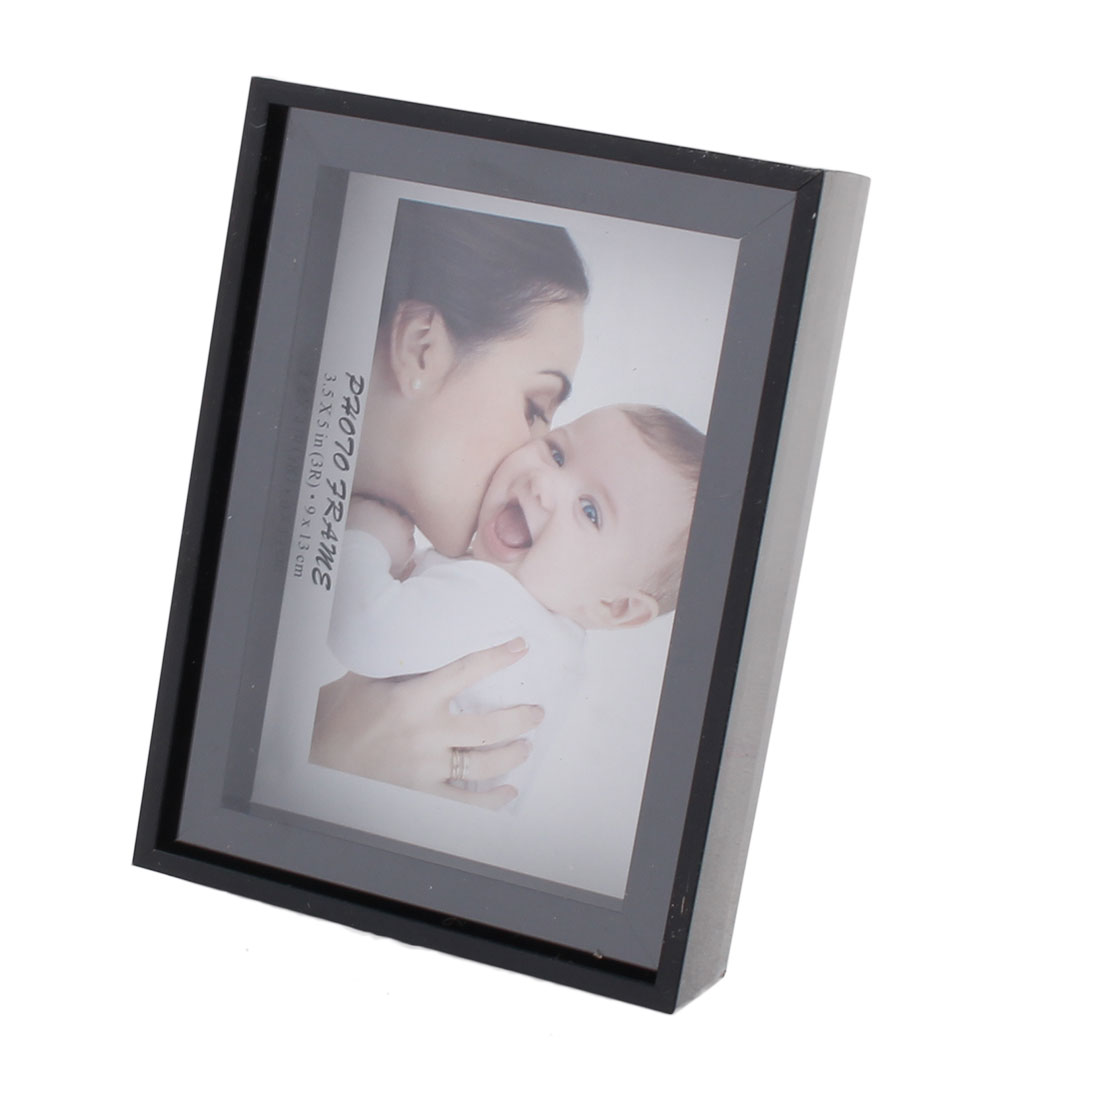 UXCELL Home Ornament Display Picture Photo Frame Christmas Gift ...